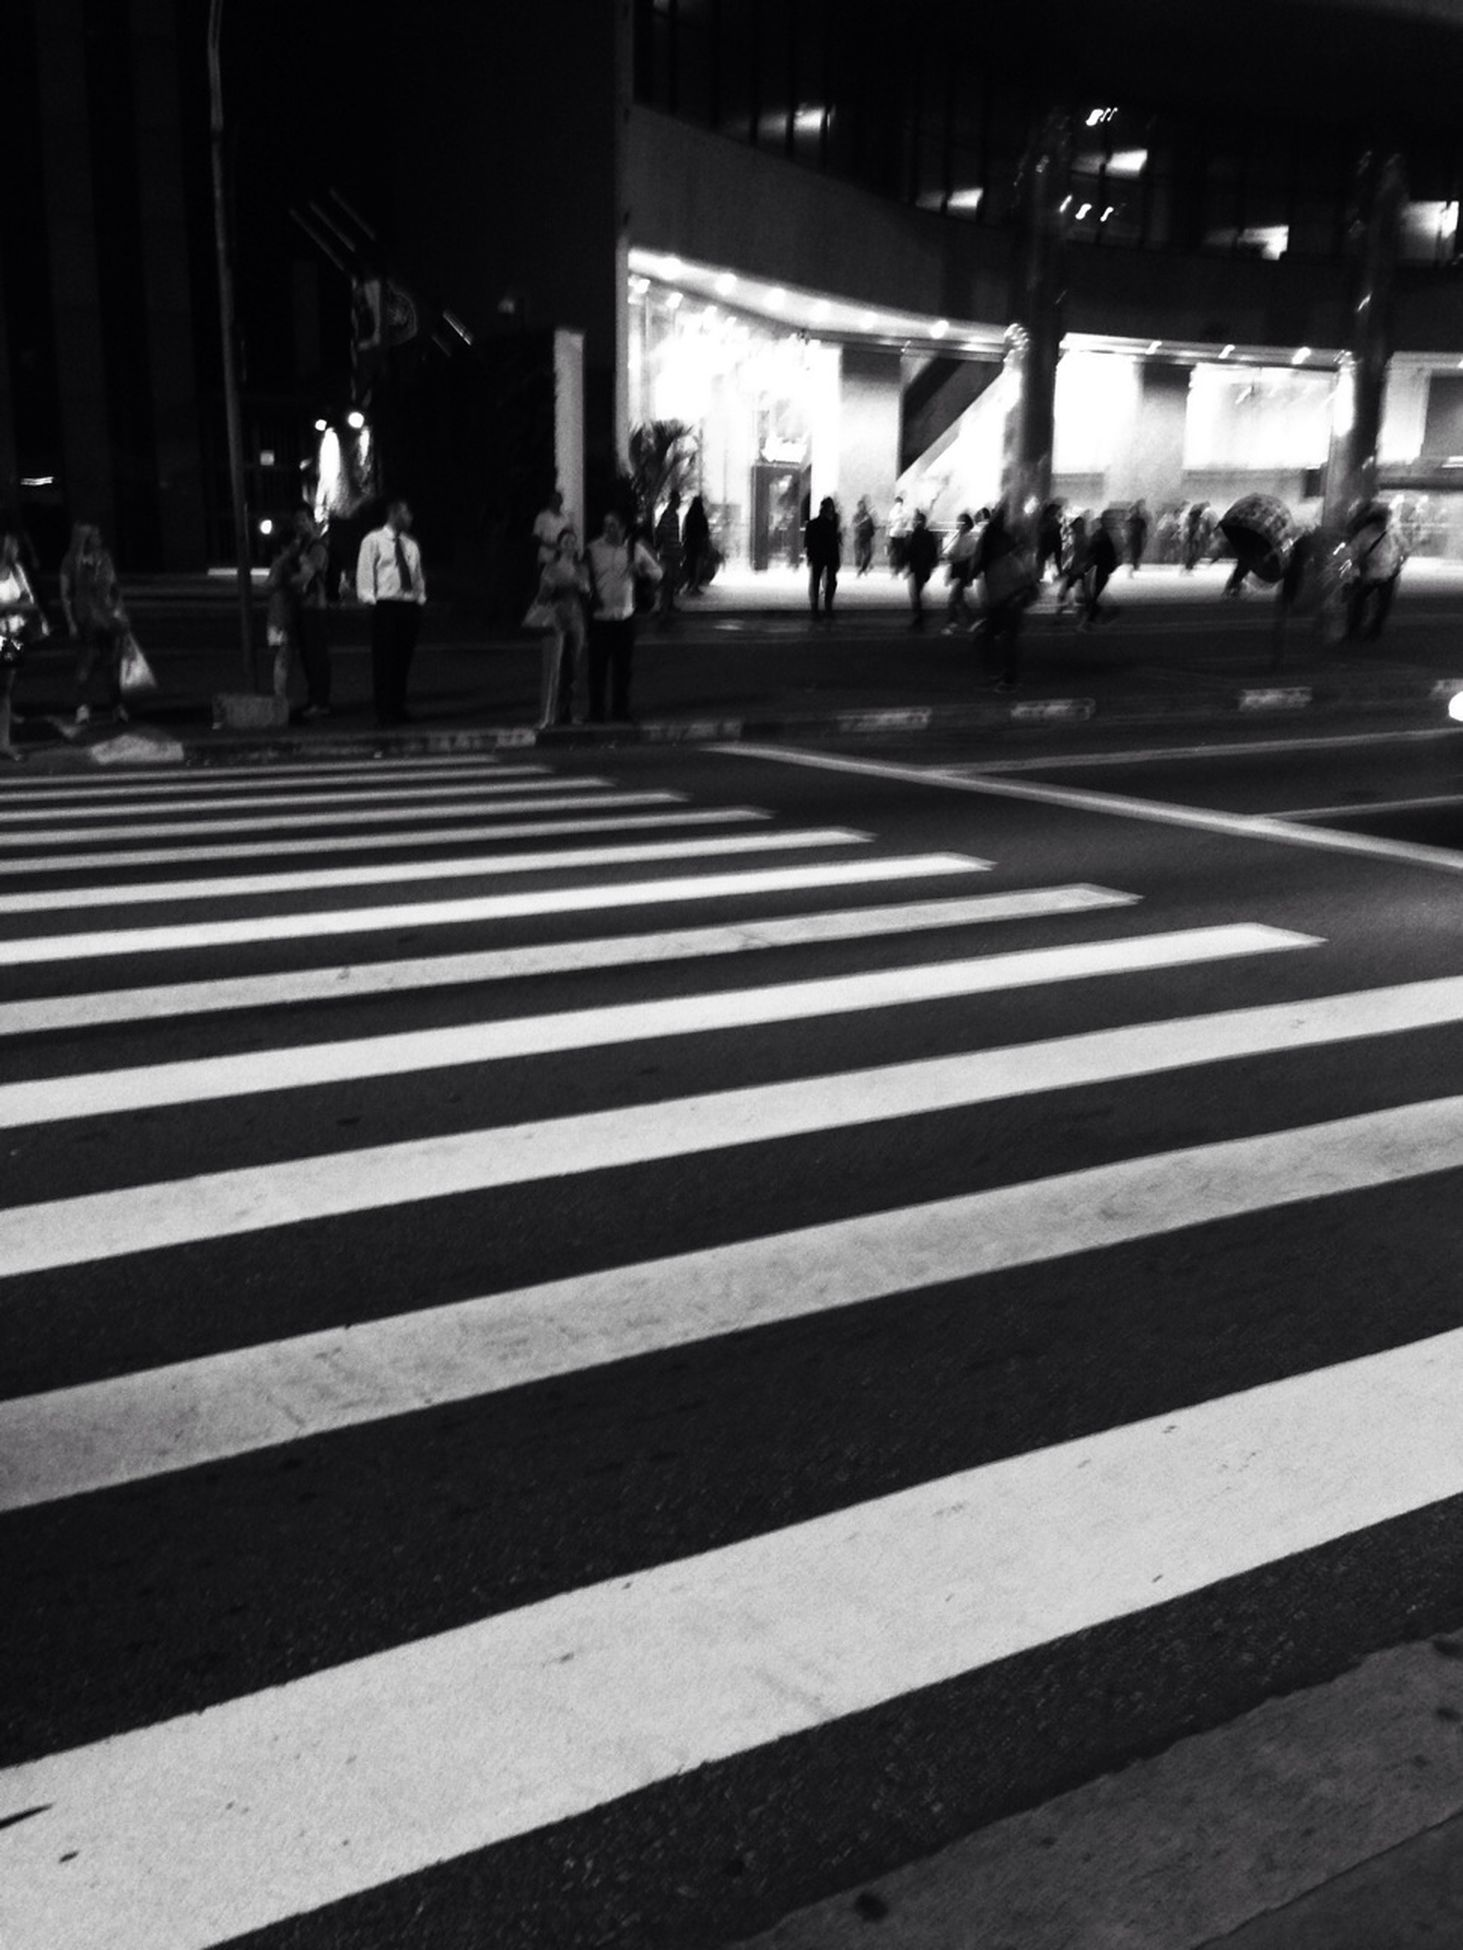 street, road marking, road, shadow, asphalt, footpath, steps, walking, zebra crossing, pattern, day, the way forward, high angle view, sidewalk, women, complex, labyrinth, maze, system, speed, city life, the way forward, journey, absence